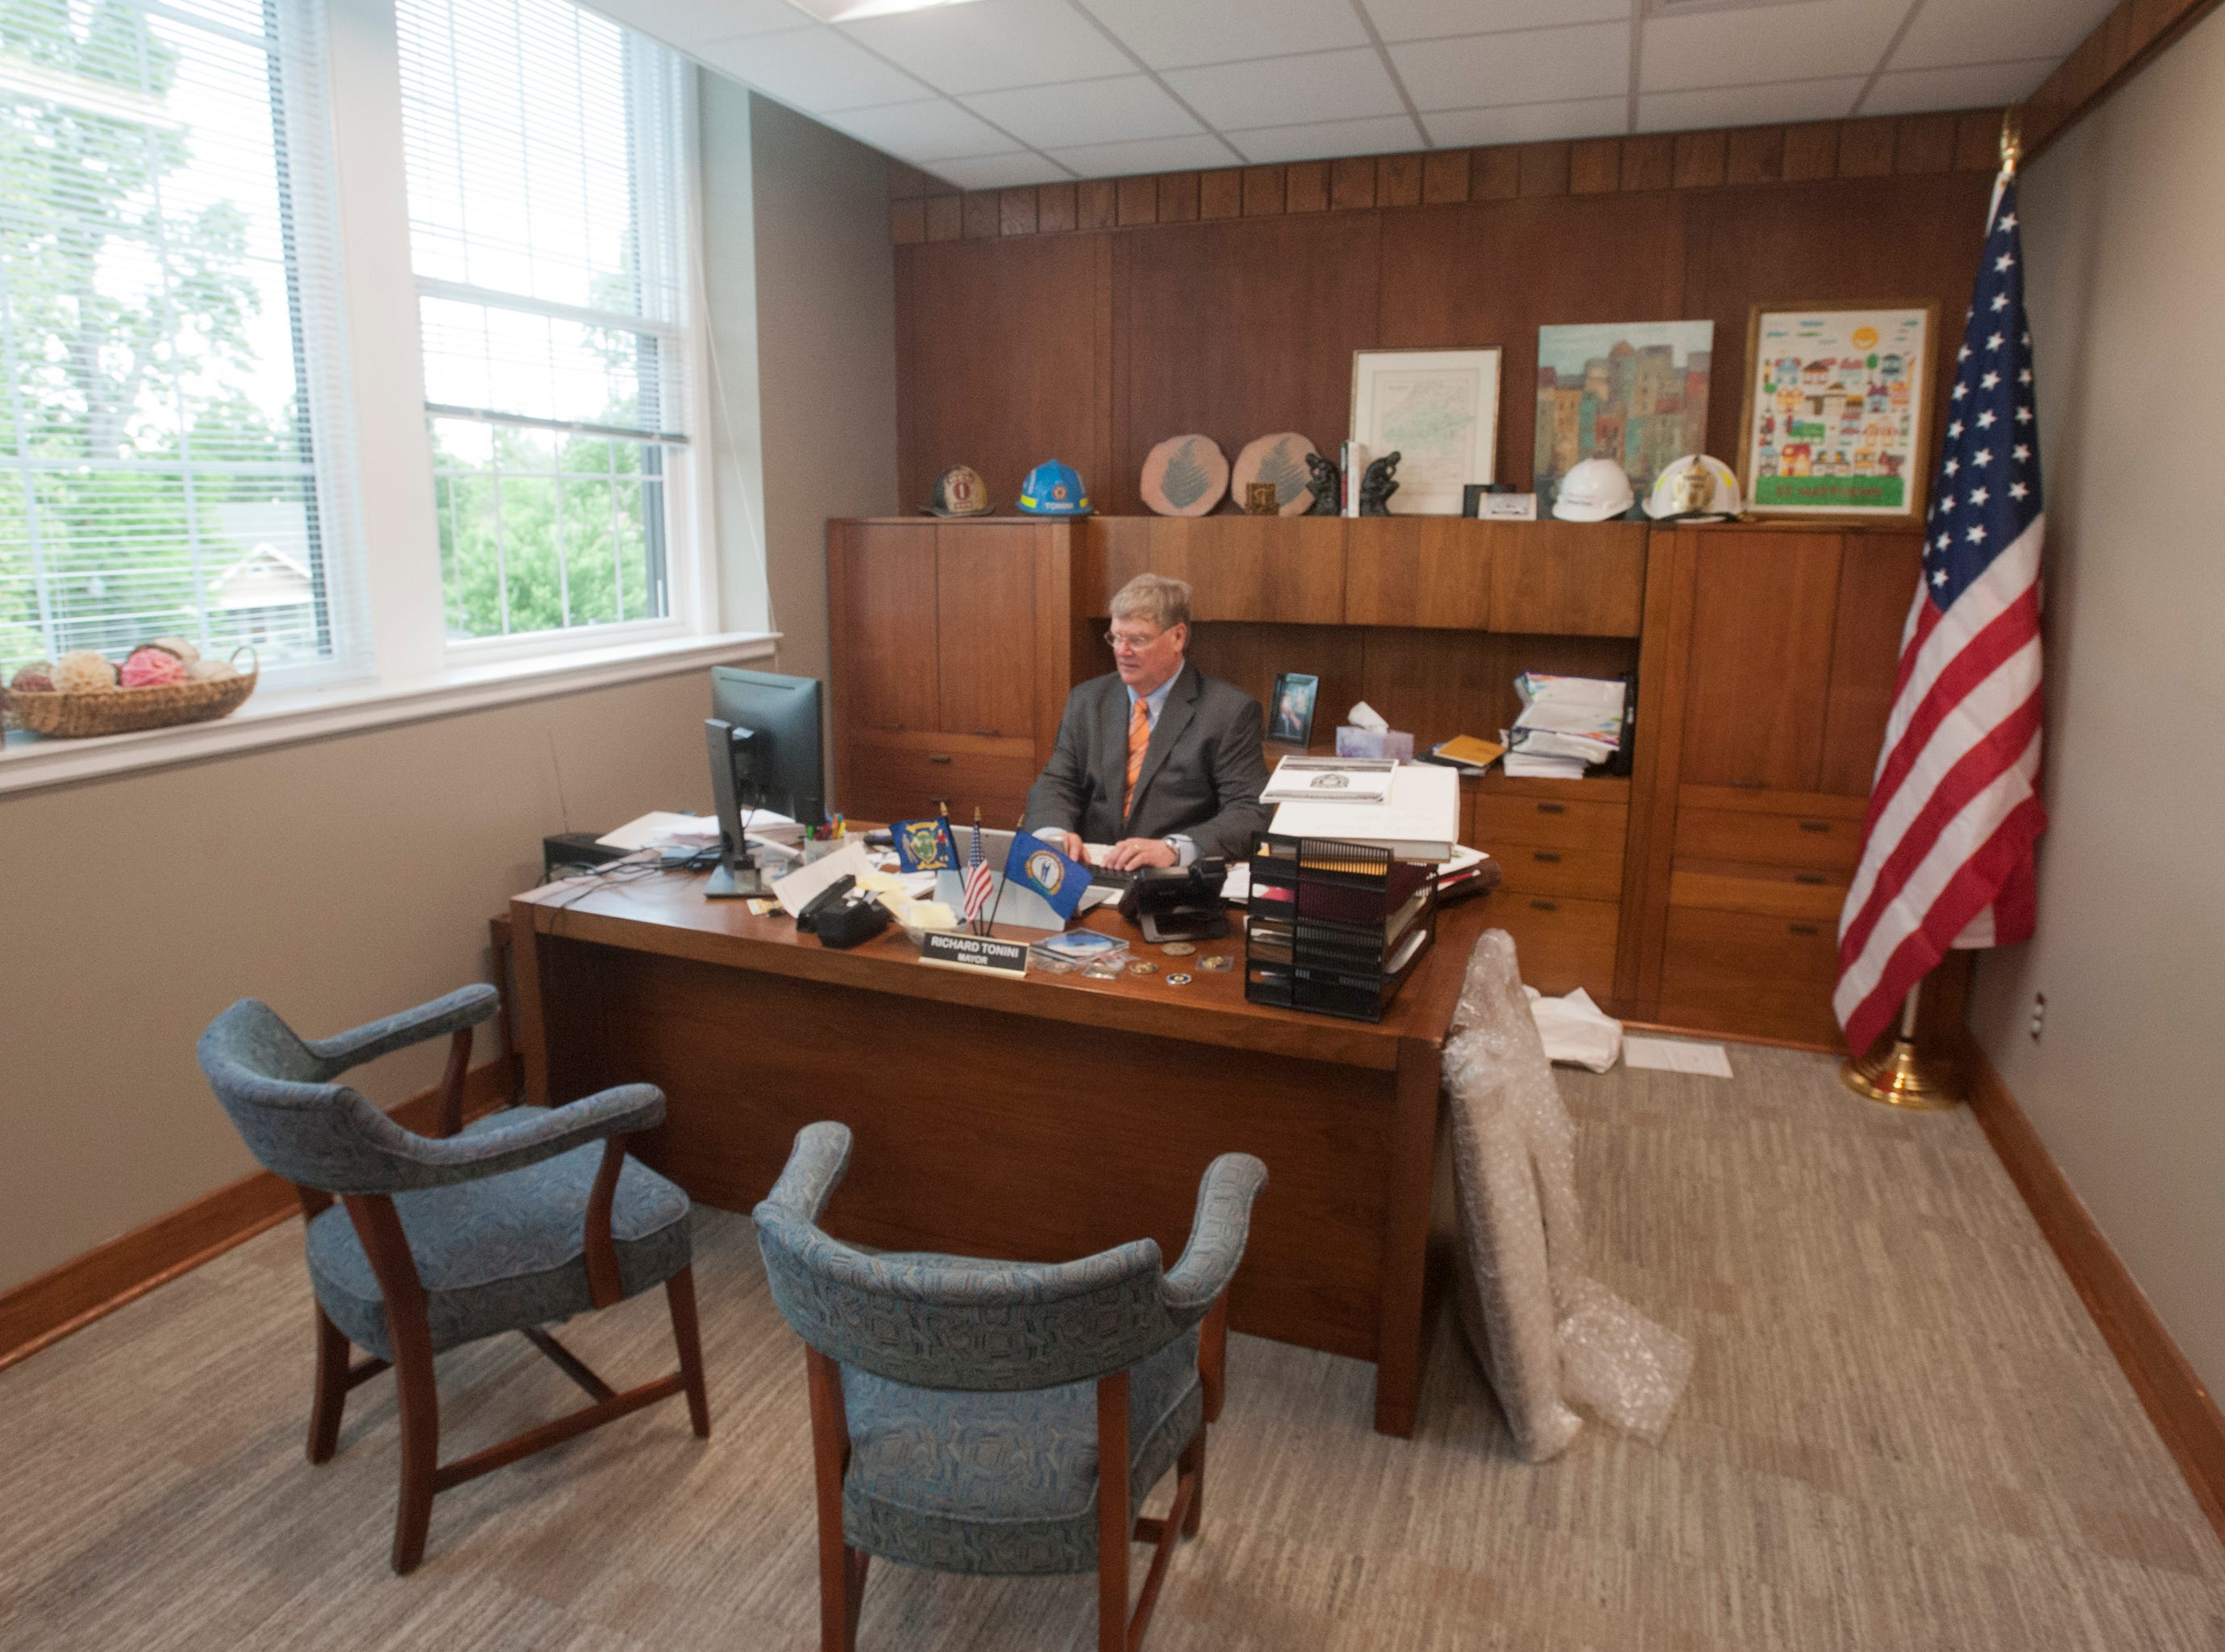 St. Matthews Mayor Rick Tonini works at his desk, in the former office of the Future Federal Savings and Loan president's office. May 9, 2019